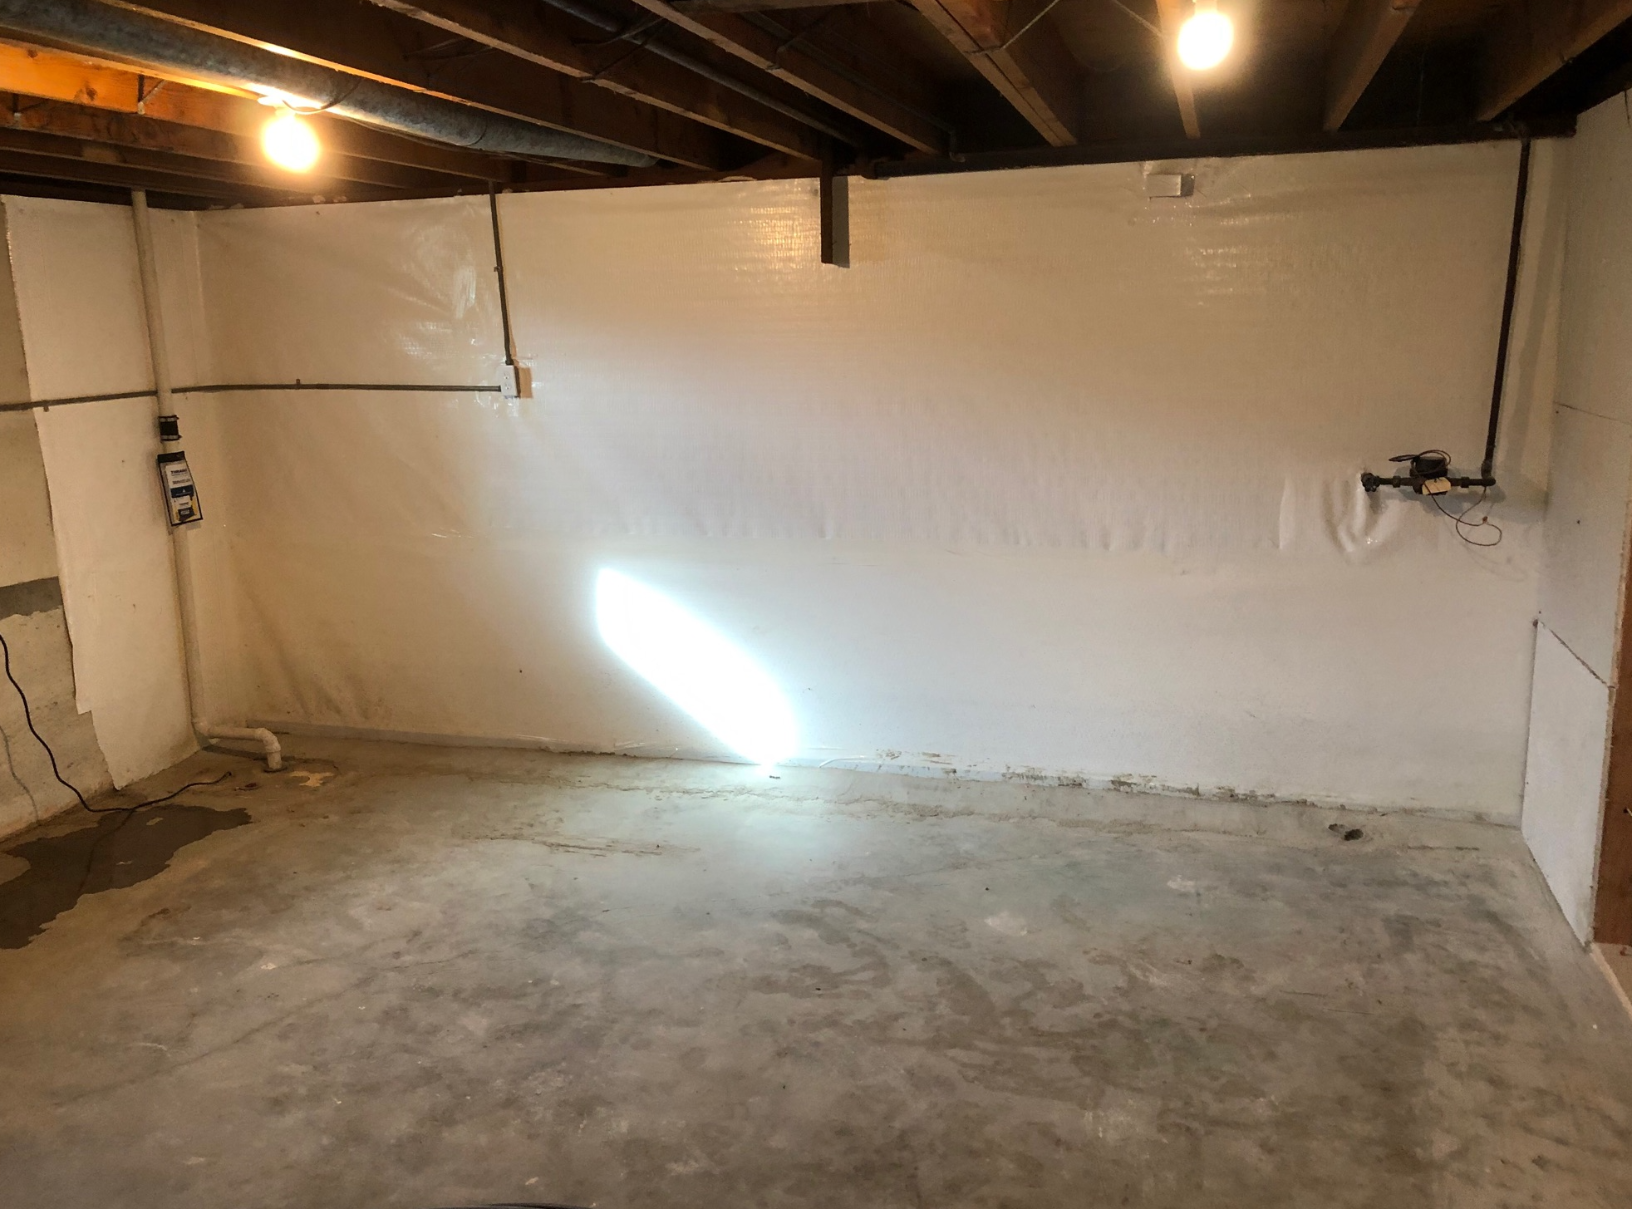 Leaking basement fixed in Independence, MO - After Photo